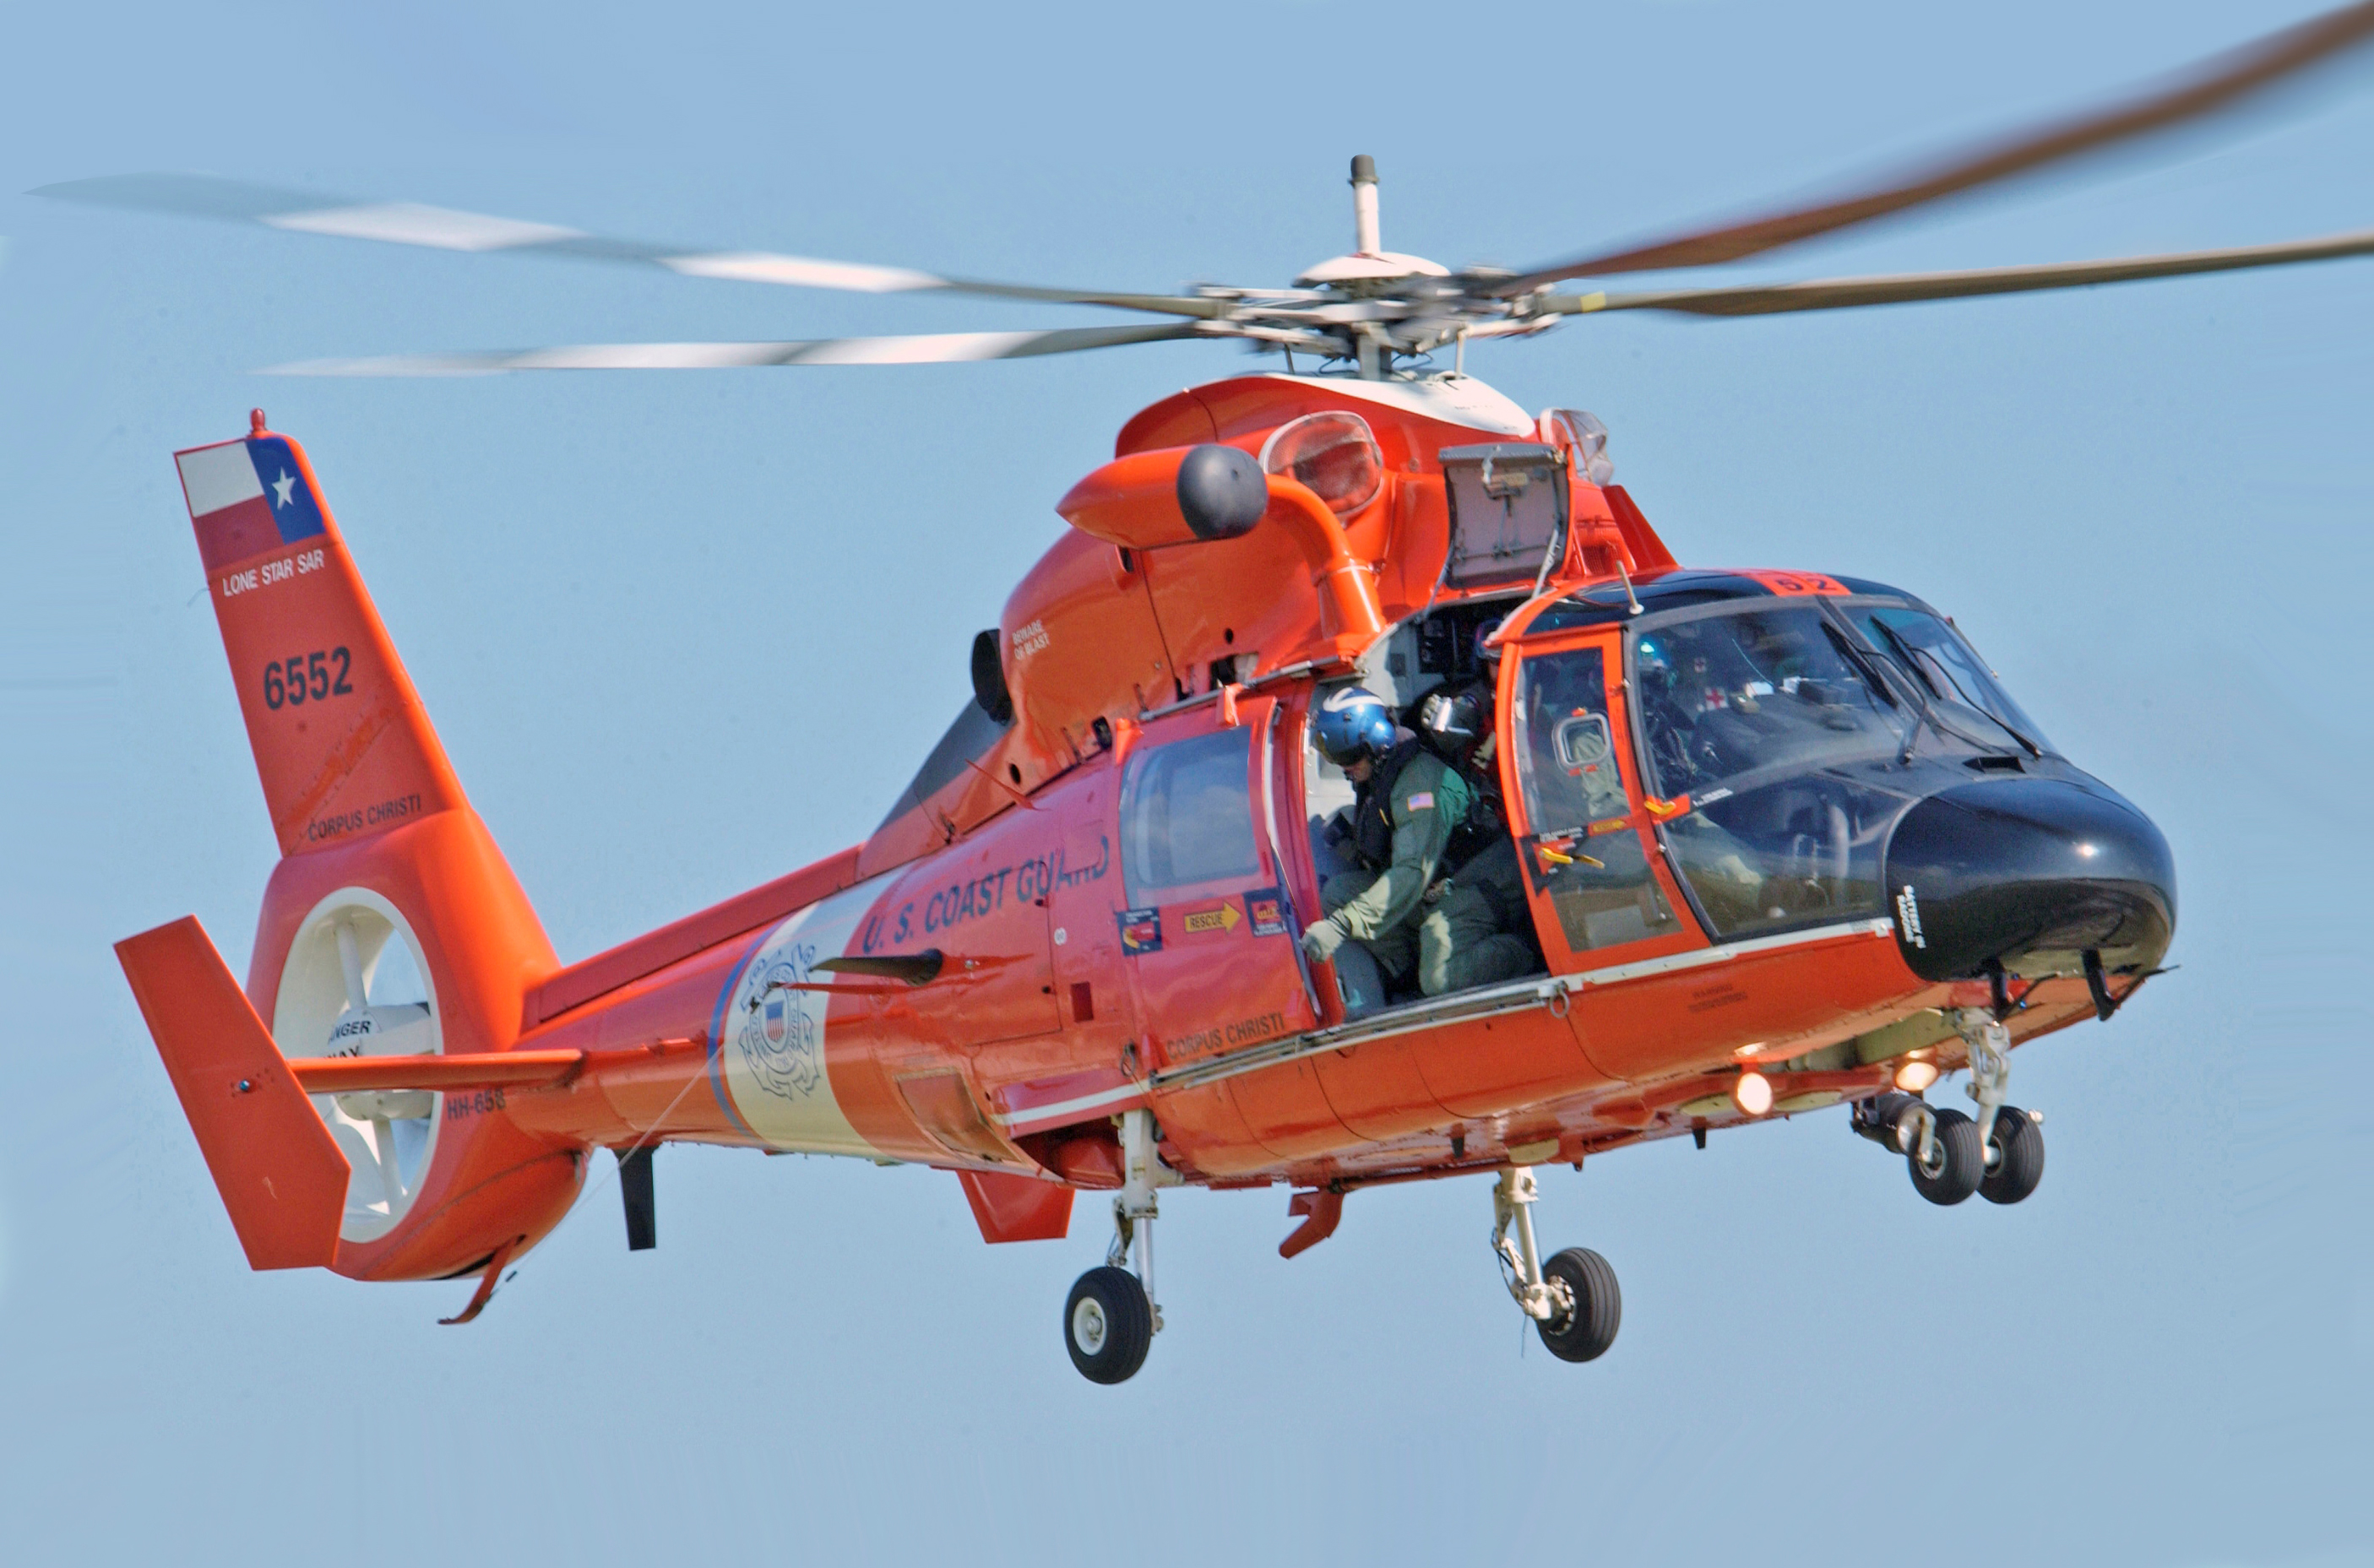 Eurocopter HH-65 Dolphin - Wikipedia